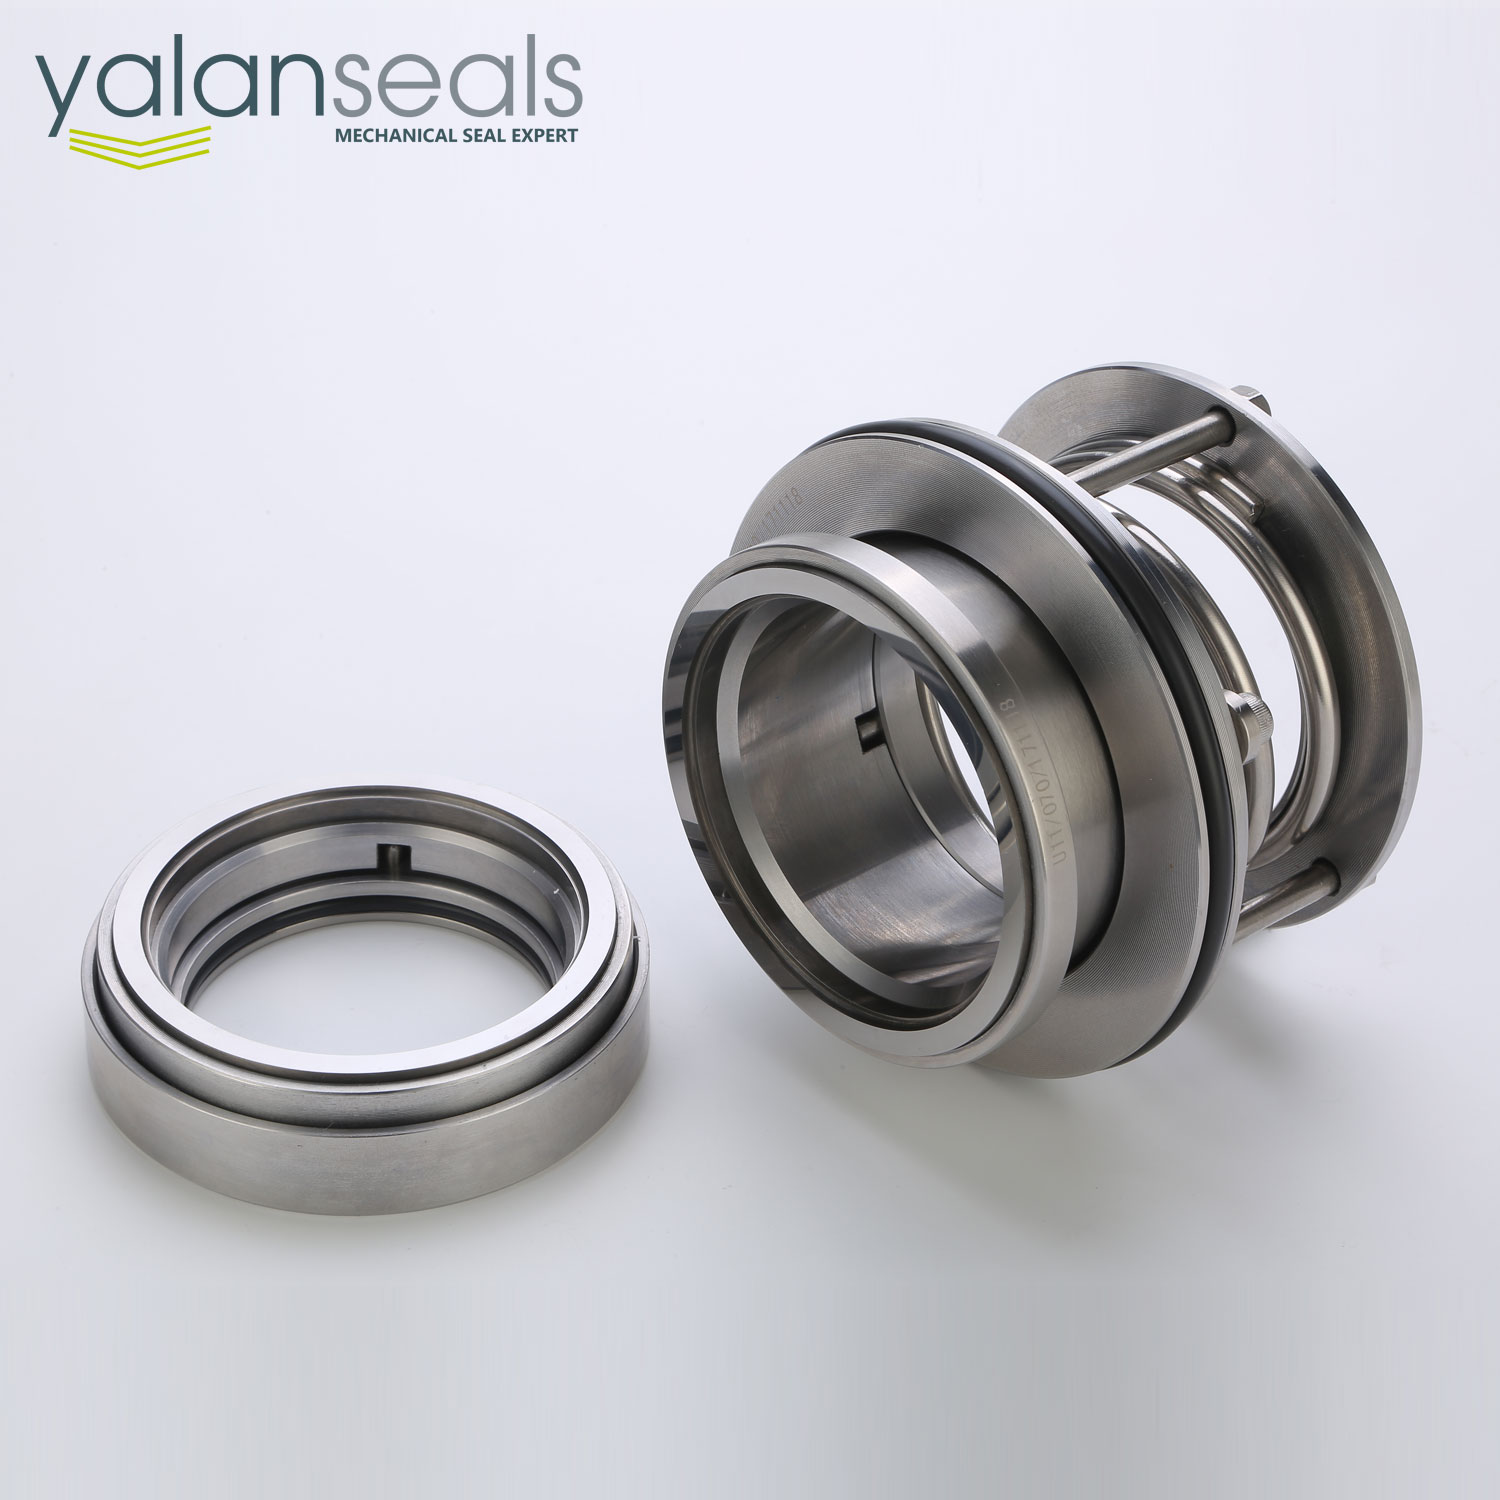 YALAN B173 Mechanical Seal for Slurry Pumps